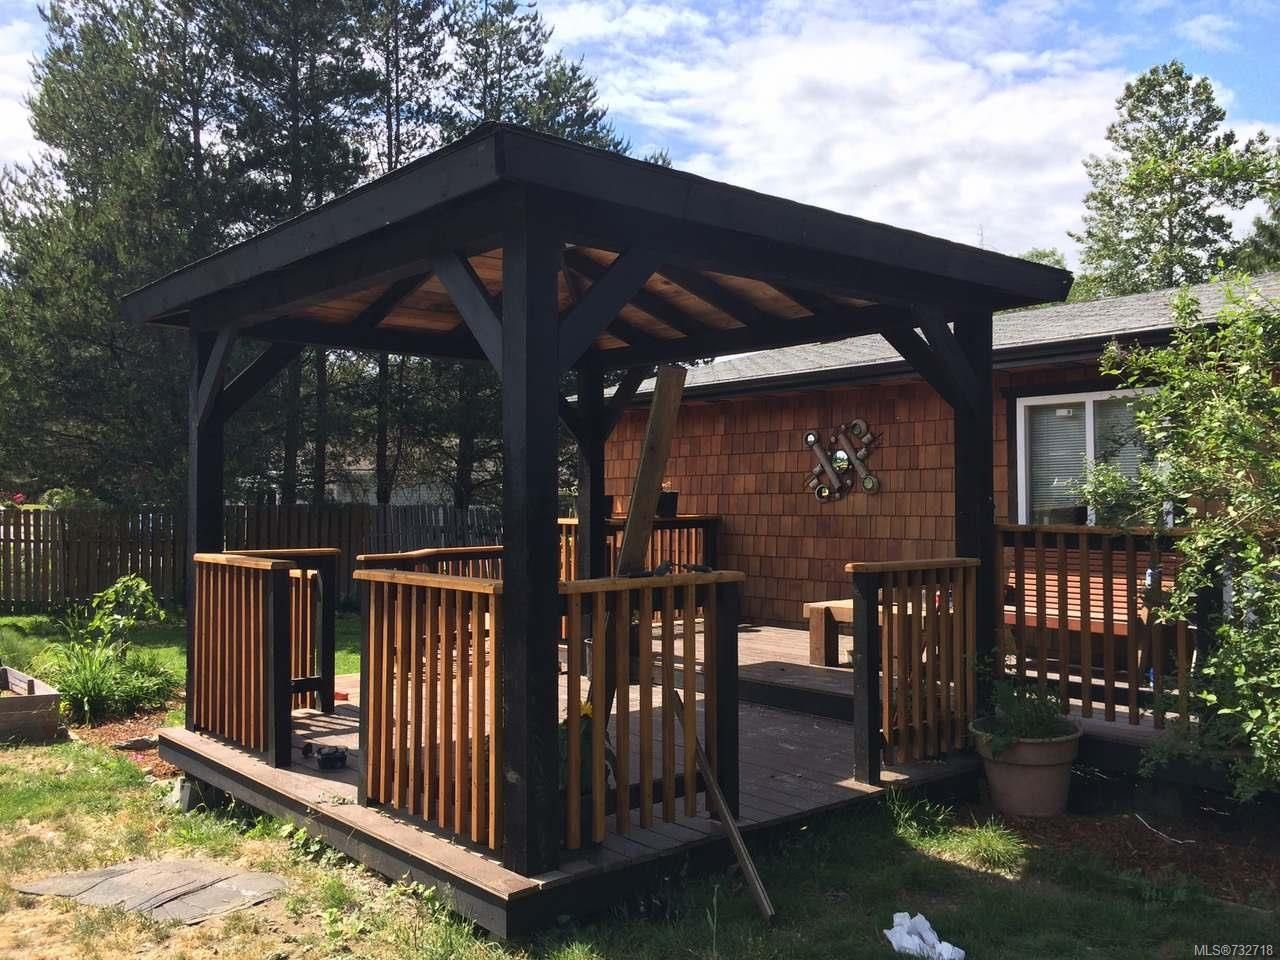 Photo 31: Photos: 921 POPLAR Way in ERRINGTON: PQ Errington/Coombs/Hilliers Manufactured Home for sale (Parksville/Qualicum)  : MLS®# 732718